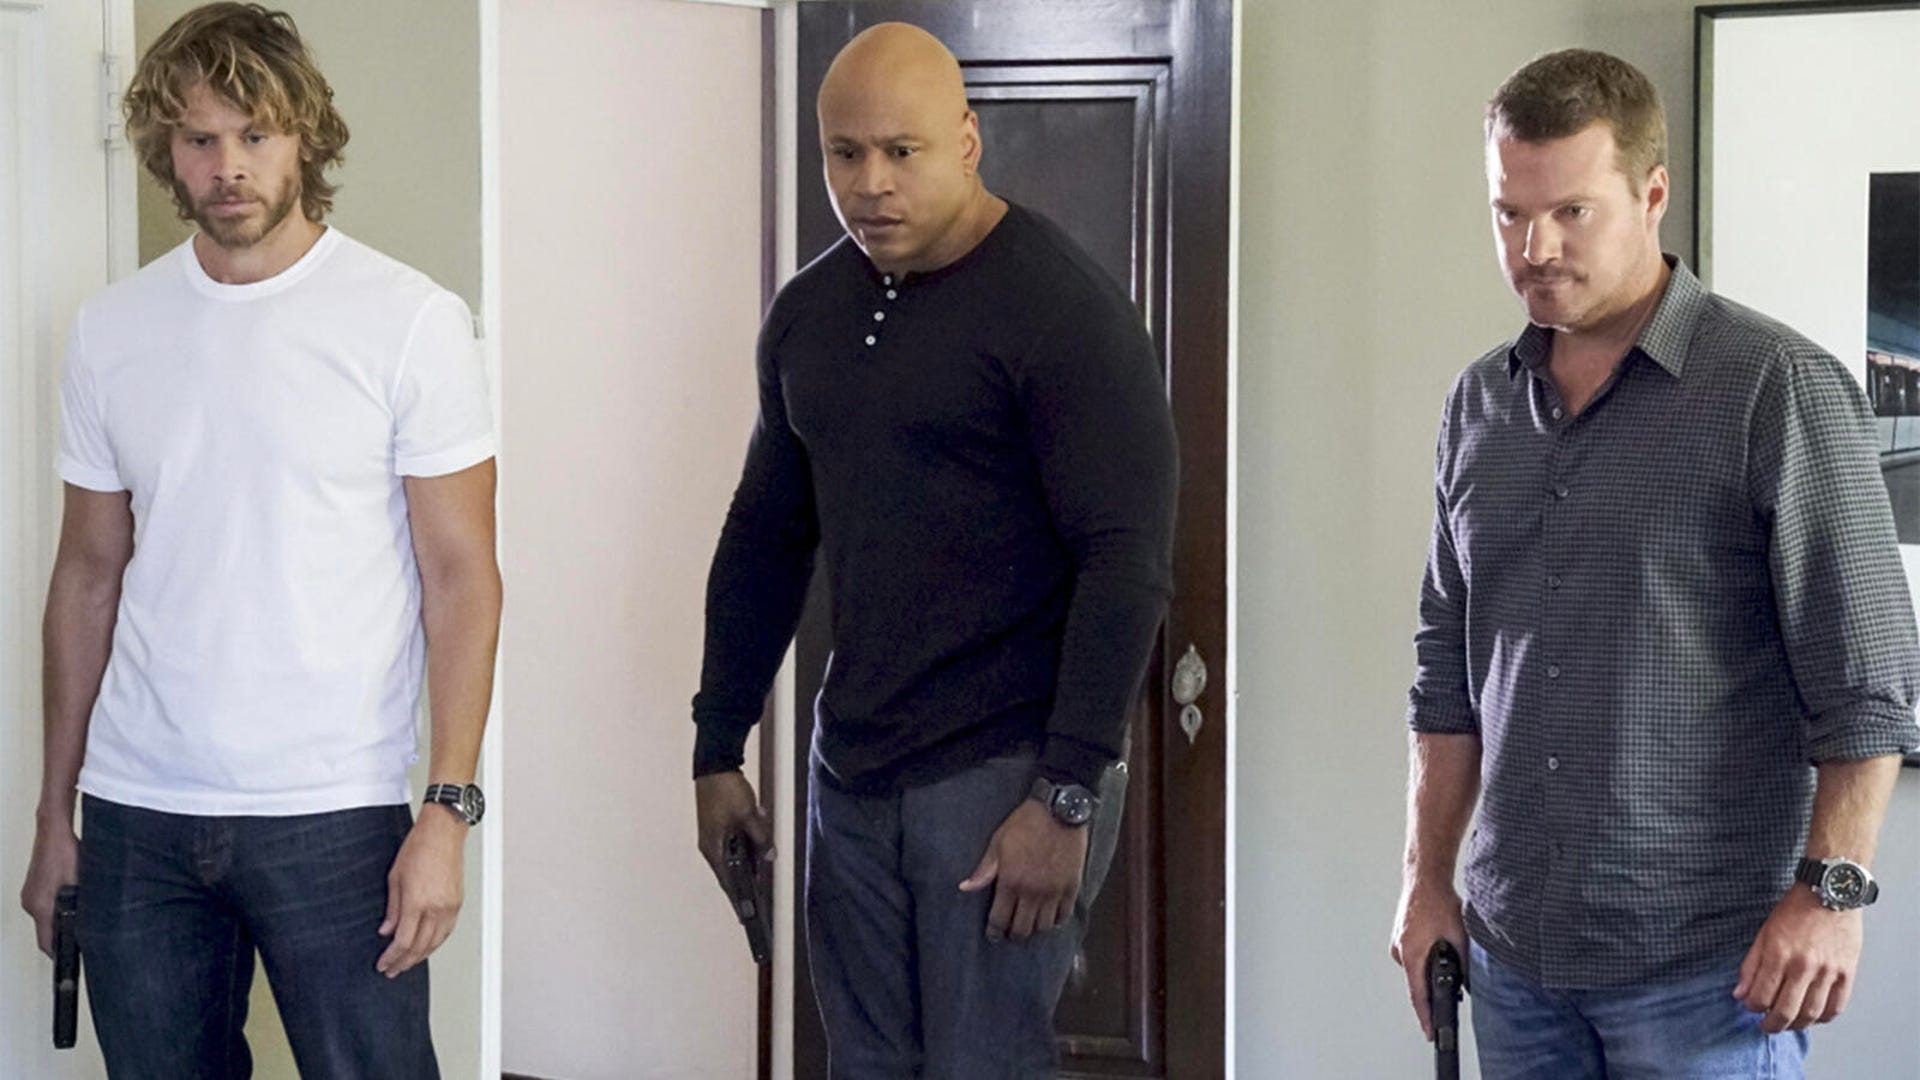 Eric Olsen, LL Cool J, and Chris O'Donnell, NCIS: Los Angeles